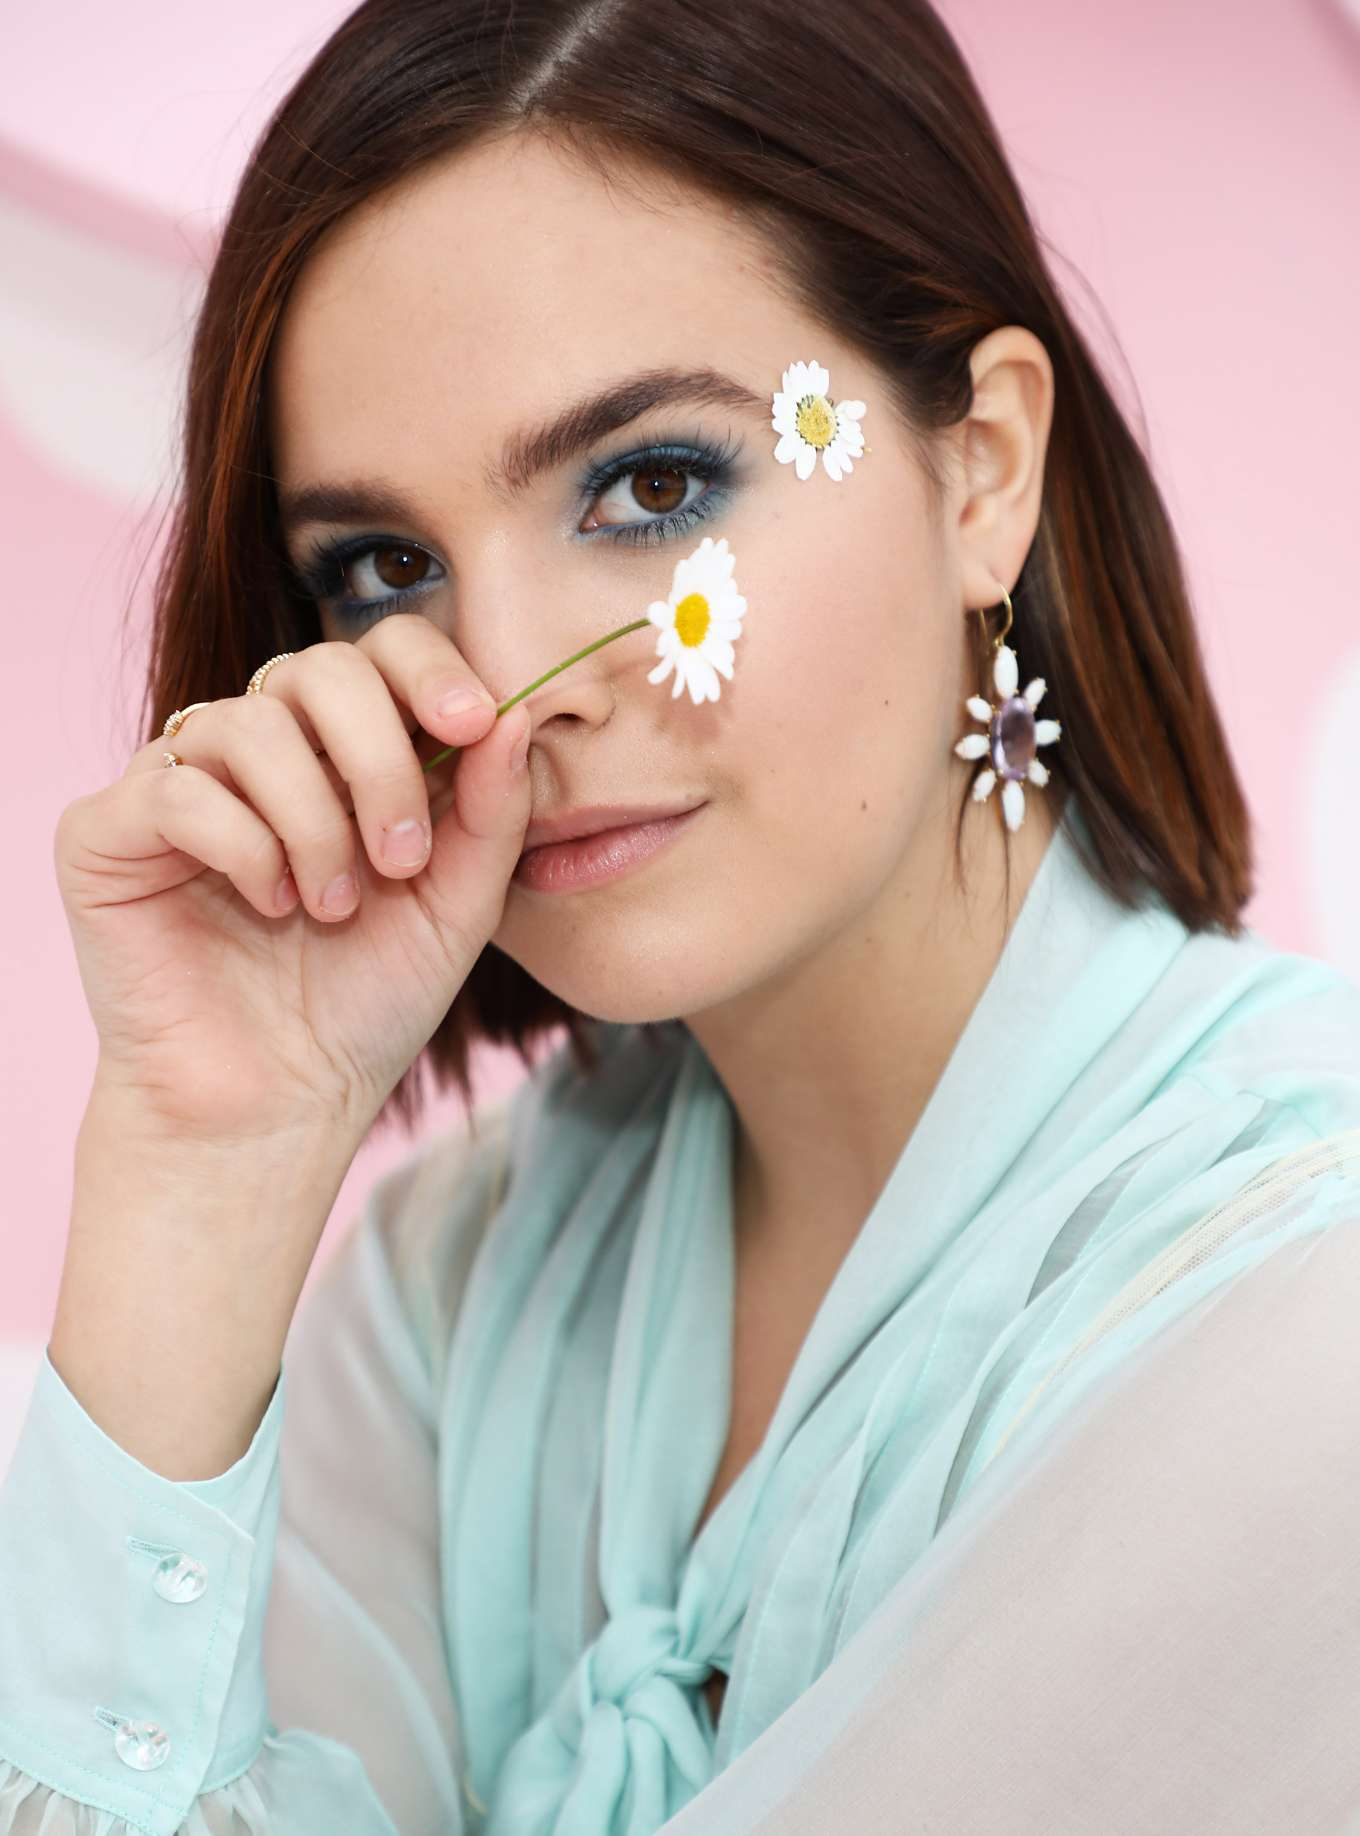 Bailee Madison Marc Jacobs Daisy Love So Sweet Fragrance Popup